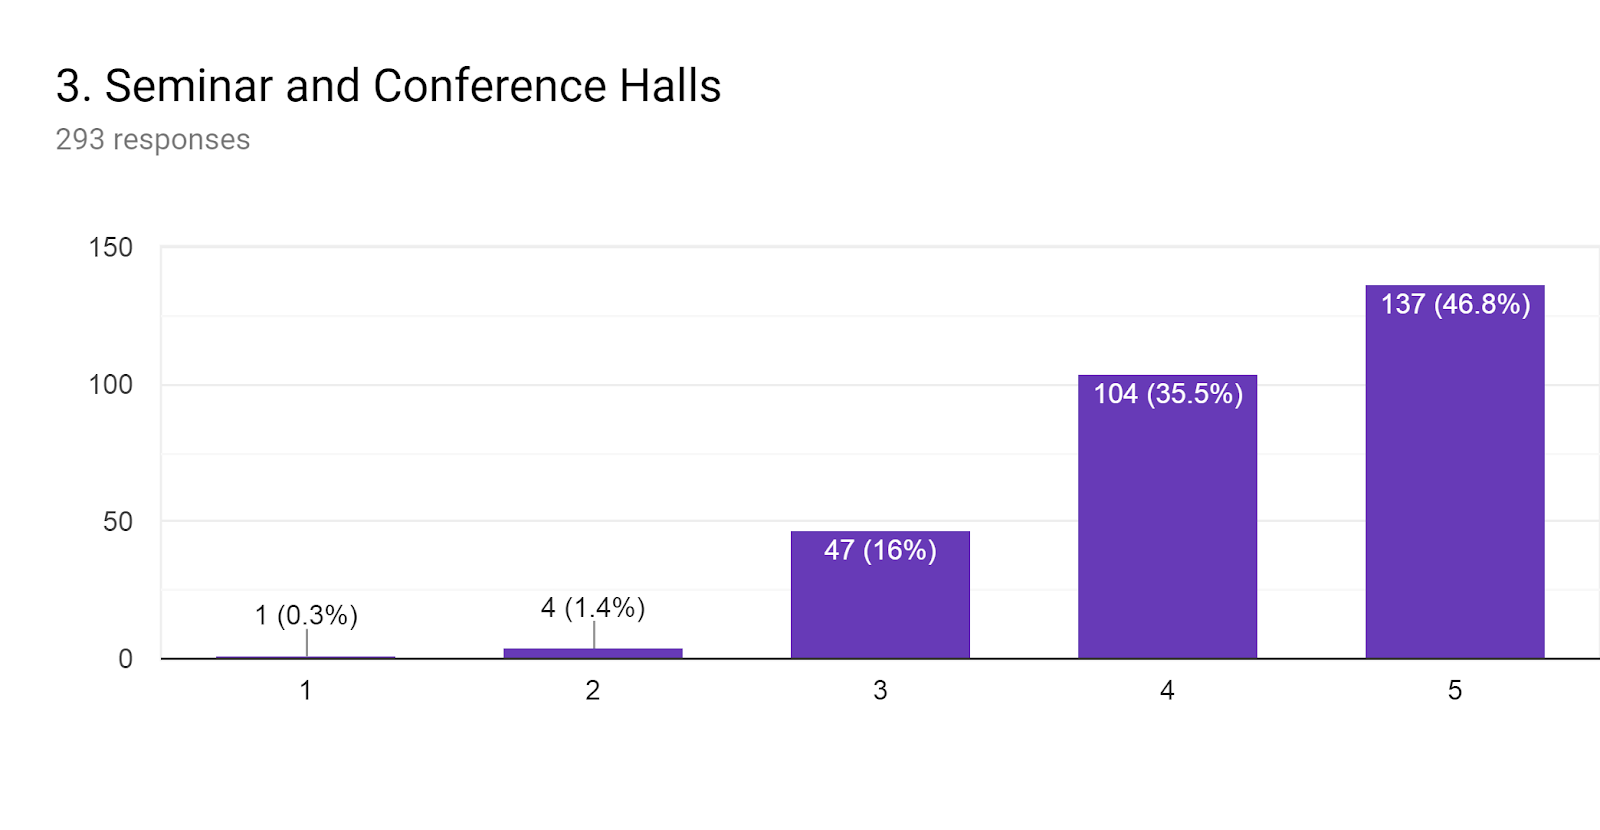 Forms response chart. Question title: 3. Seminar and Conference Halls. Number of responses: 293 responses.